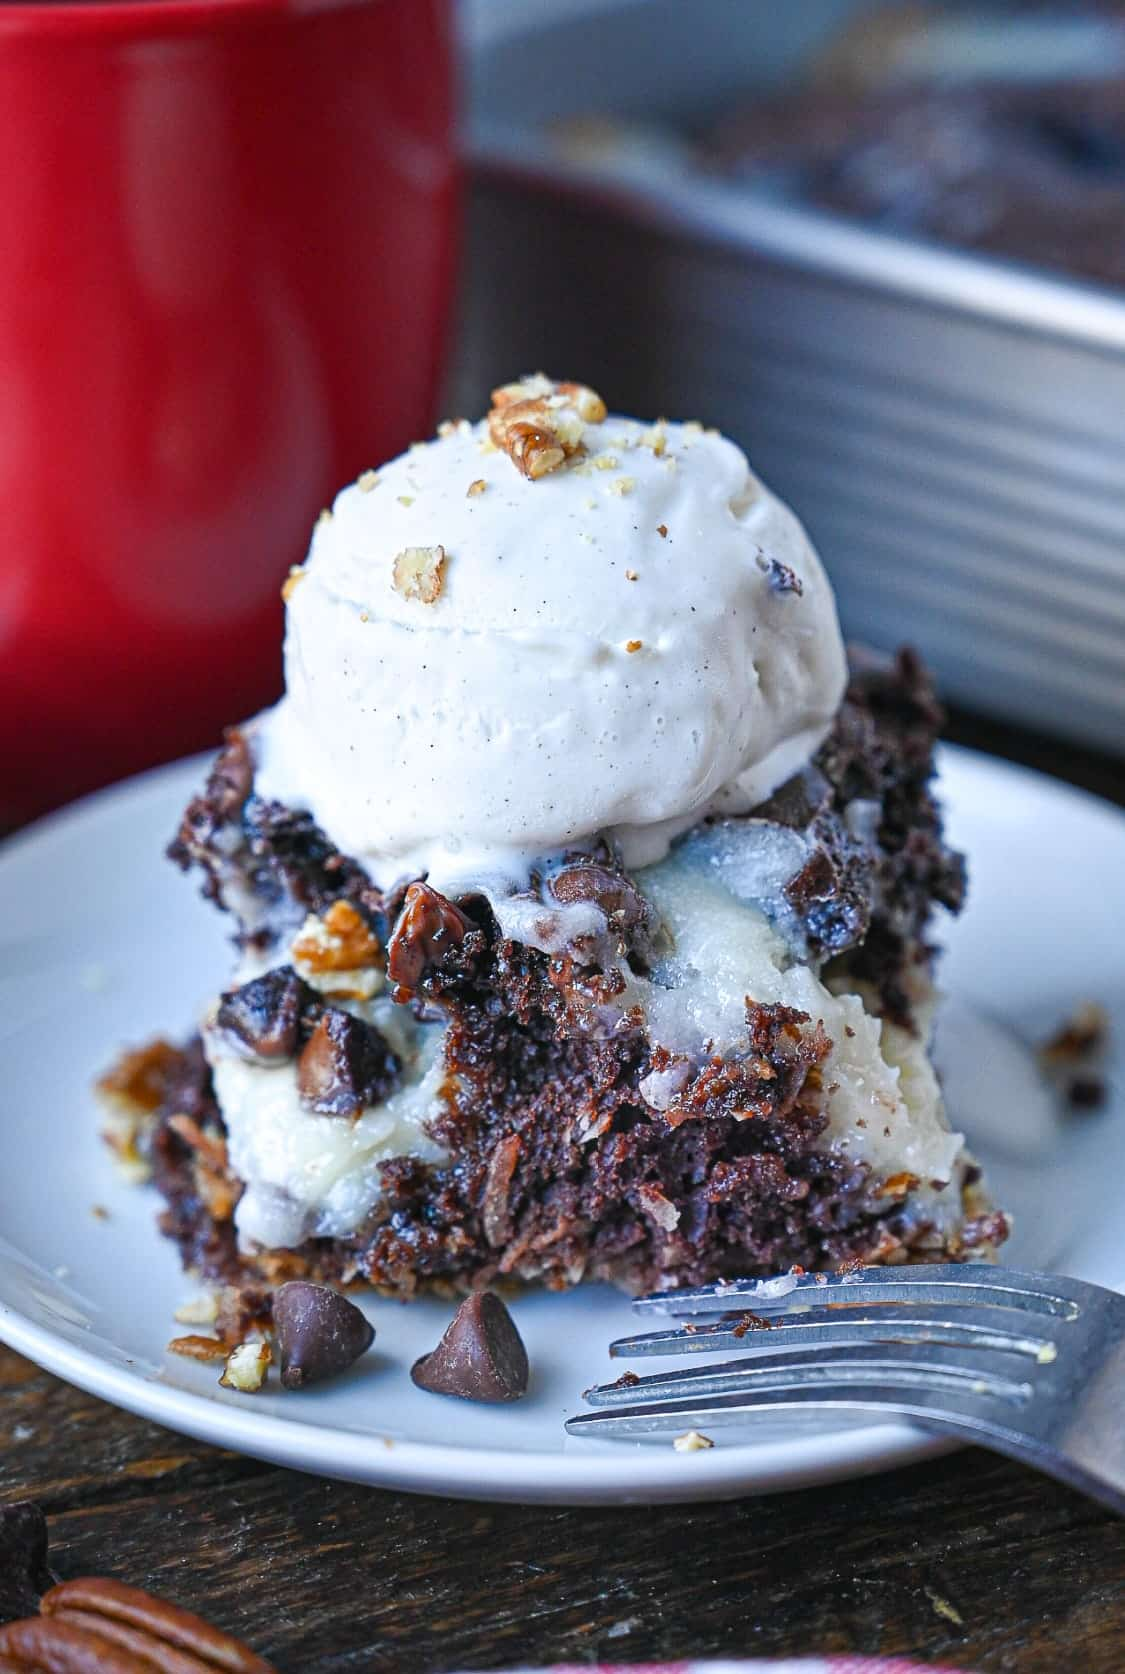 A piece of chocolate earthquake cake on a white plate with a scoop of vanilla ice cream on top.